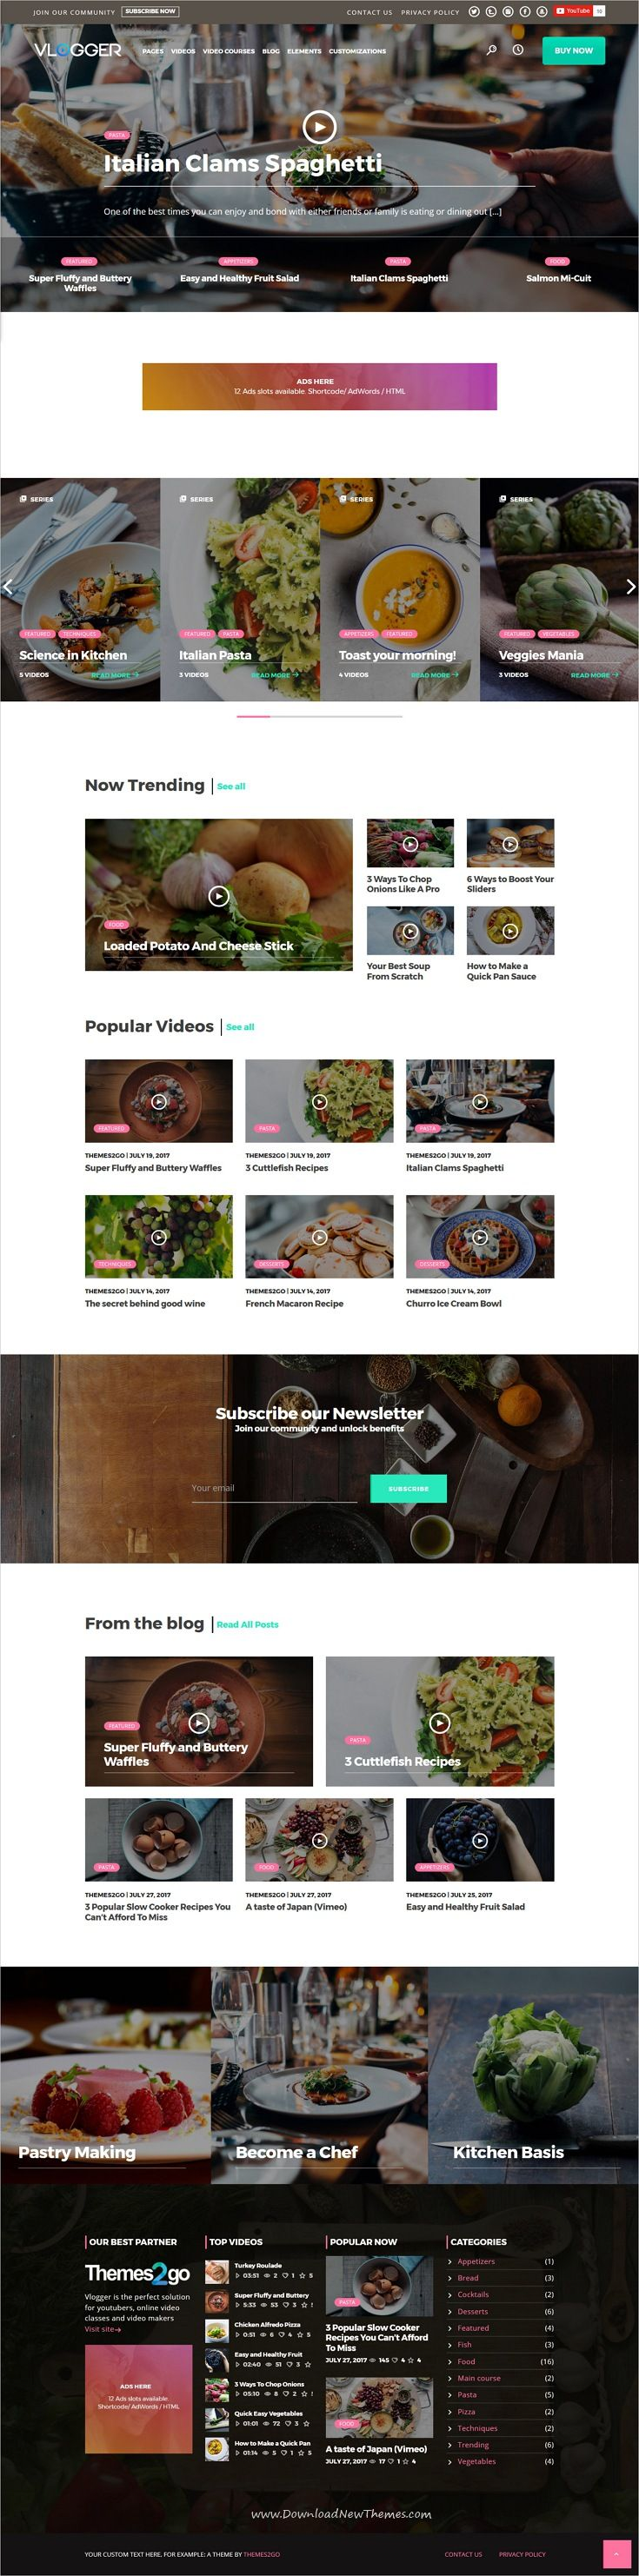 Vlogger is clean and modern design 4in1 responsive #WordPress theme for #food / #recipe #vblogger professional video, tutorials, online courses and video blogs website download now..